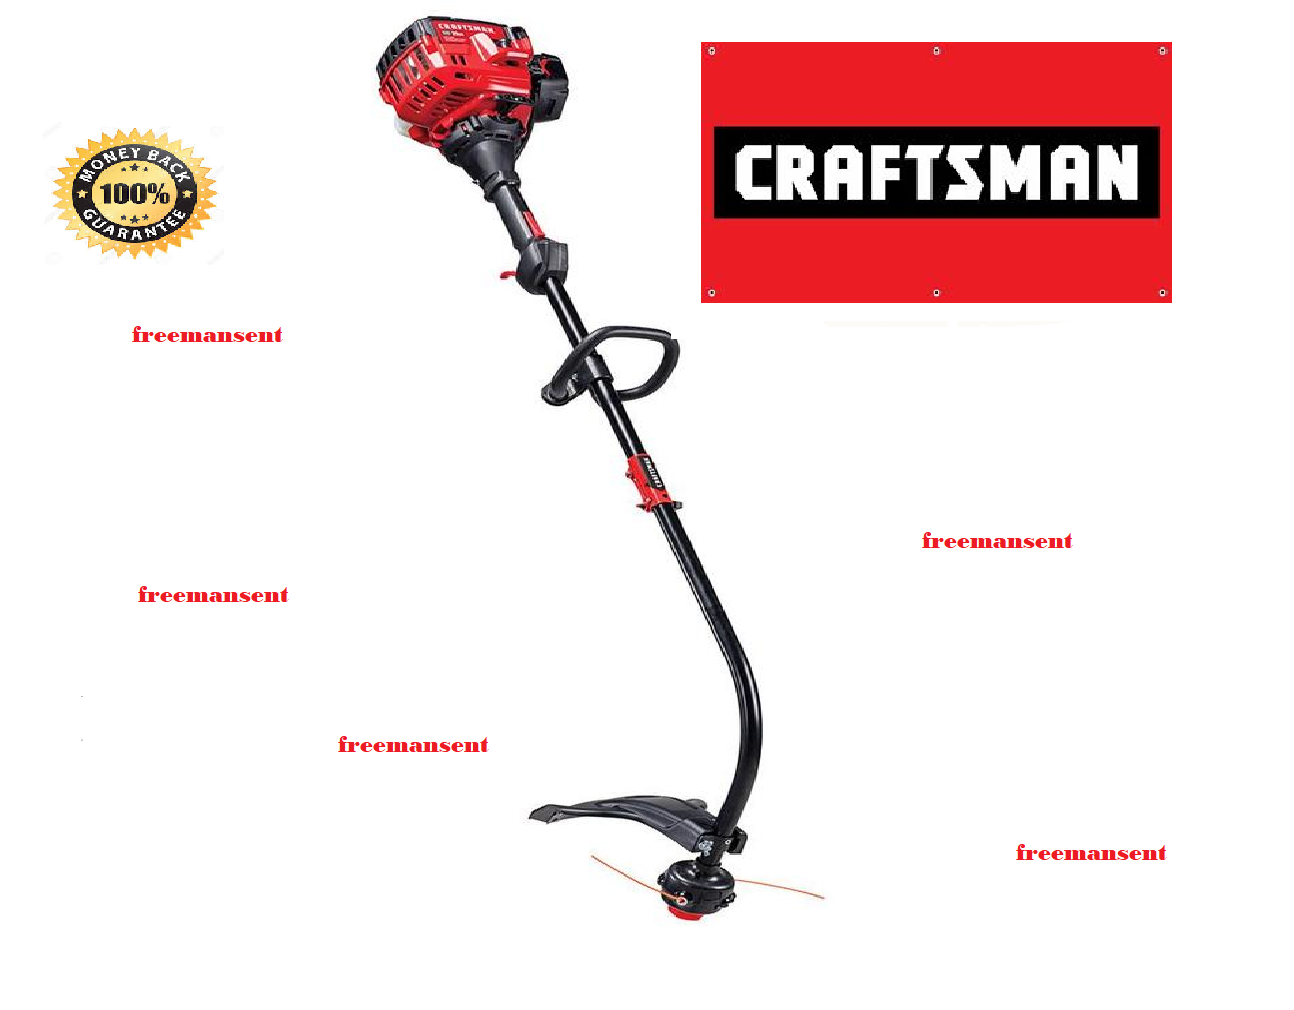 CRAFTSMAN 25CC 2-CYCLE Curved Shaft Weedeater Gas Trimmer Attachment  Compatible